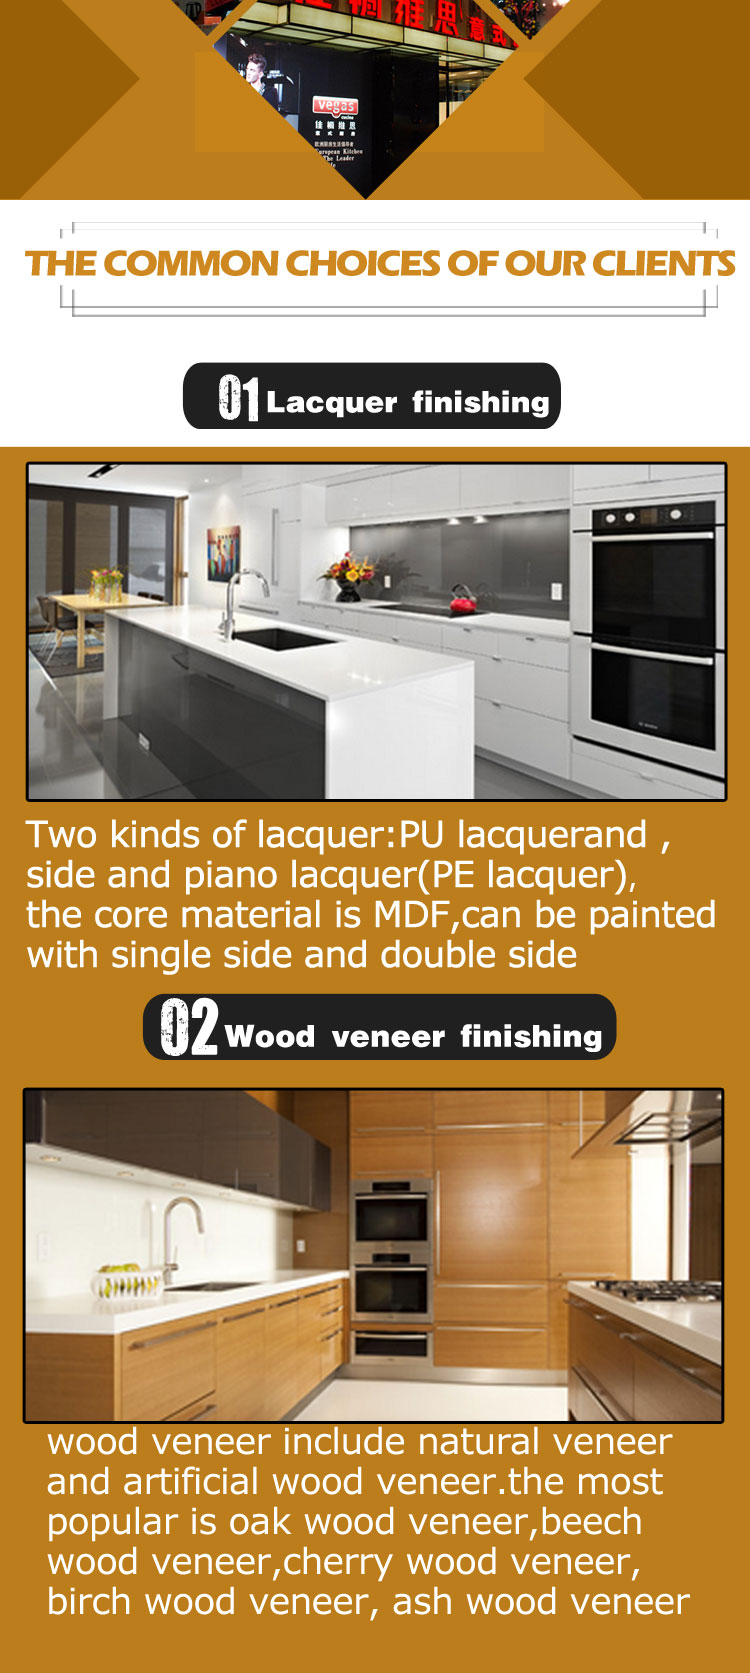 Swing walnut wood veneer cabinet door